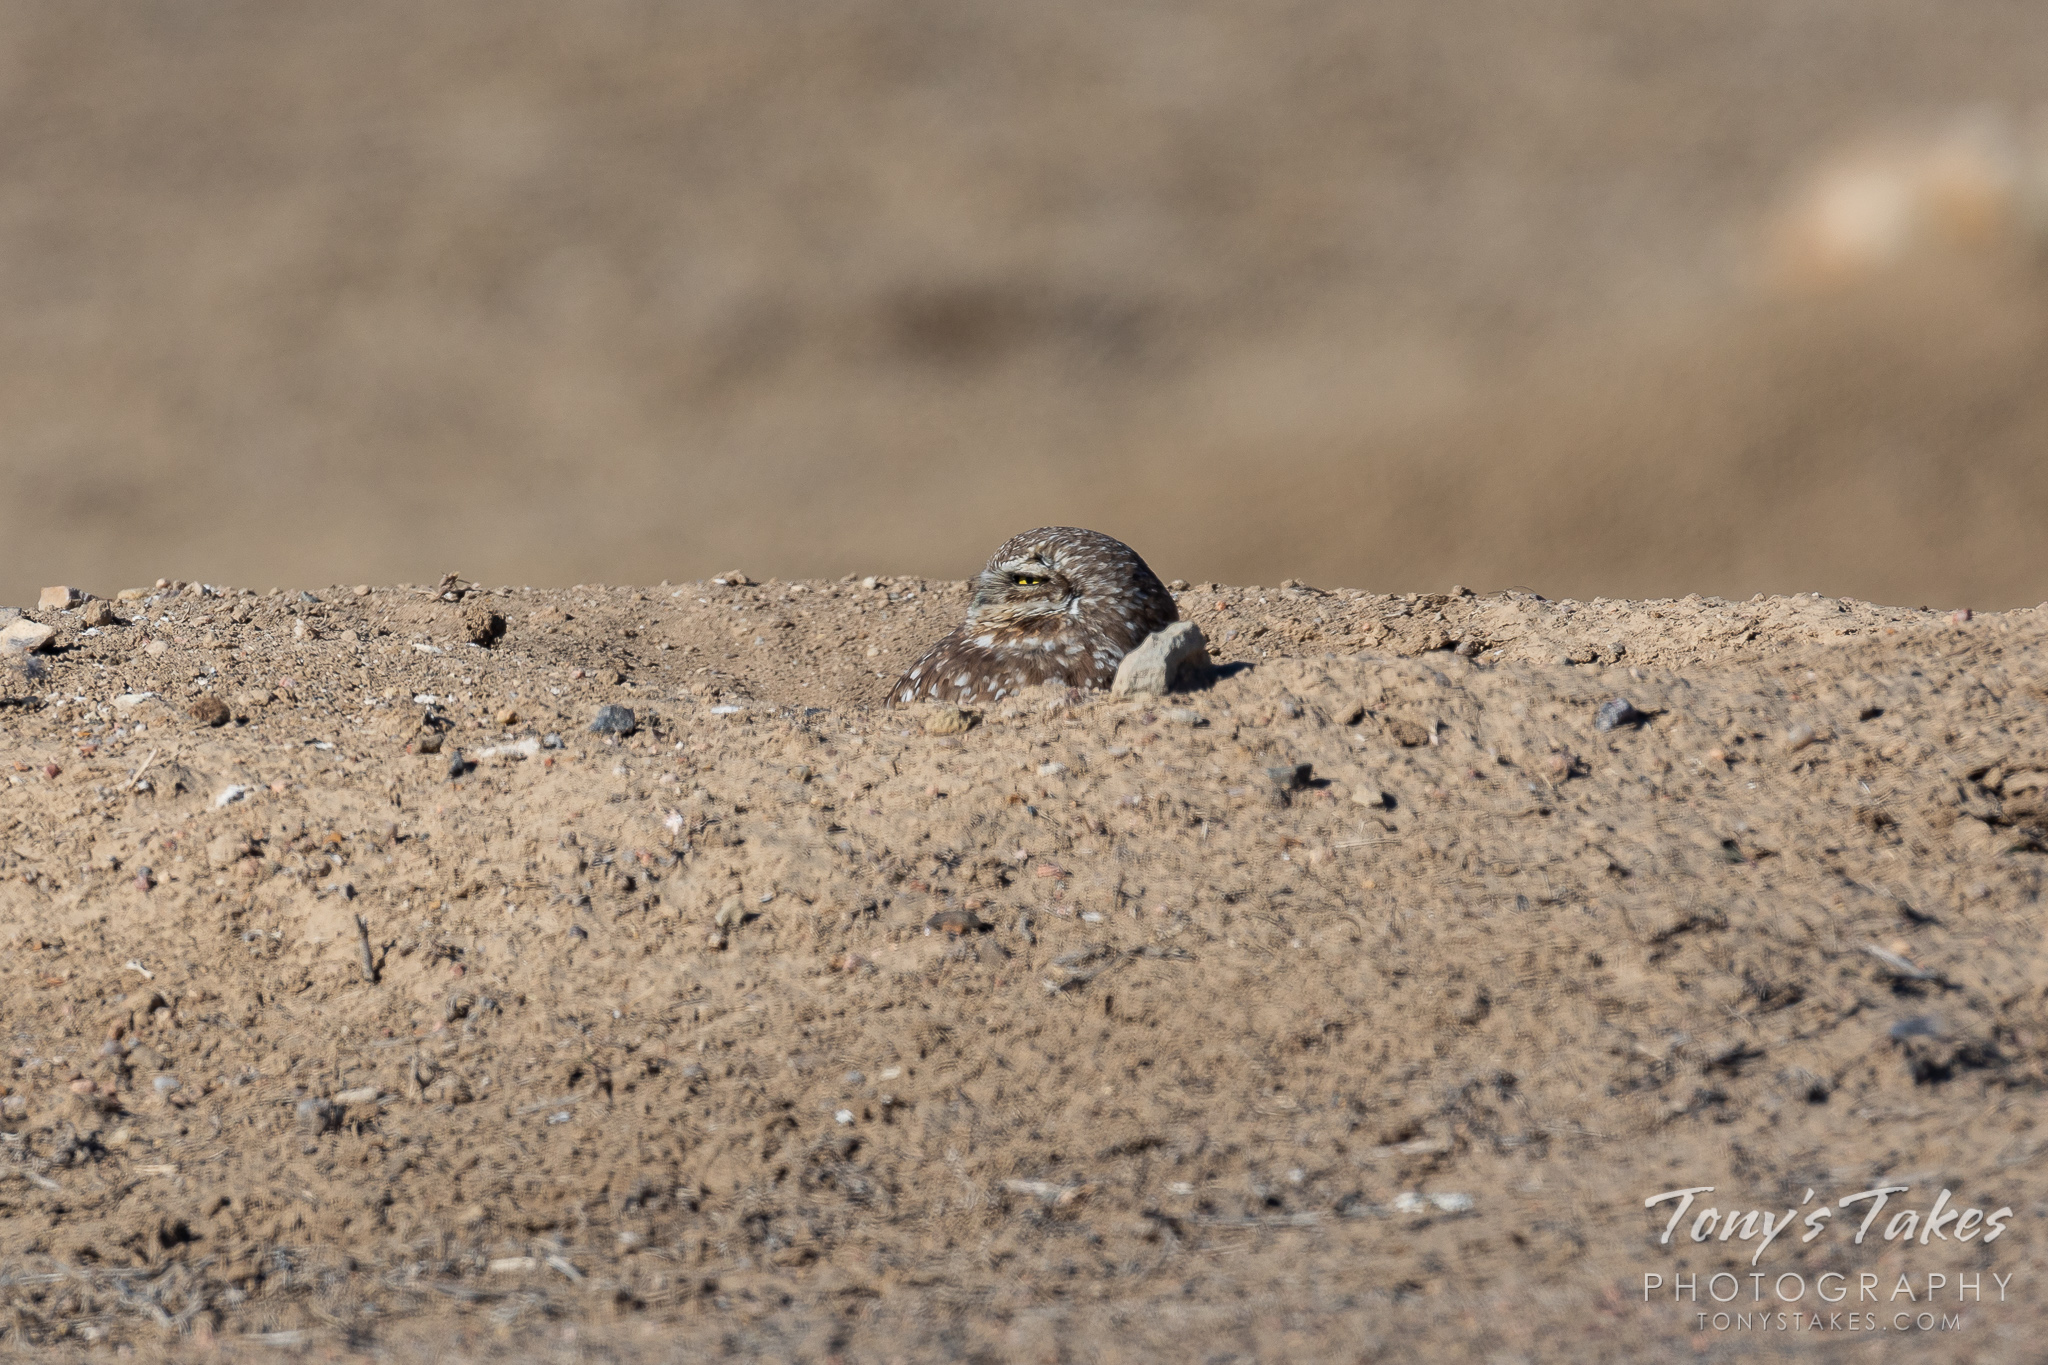 A burrowing owl hunkers down in its burrow. (© Tony's Takes)